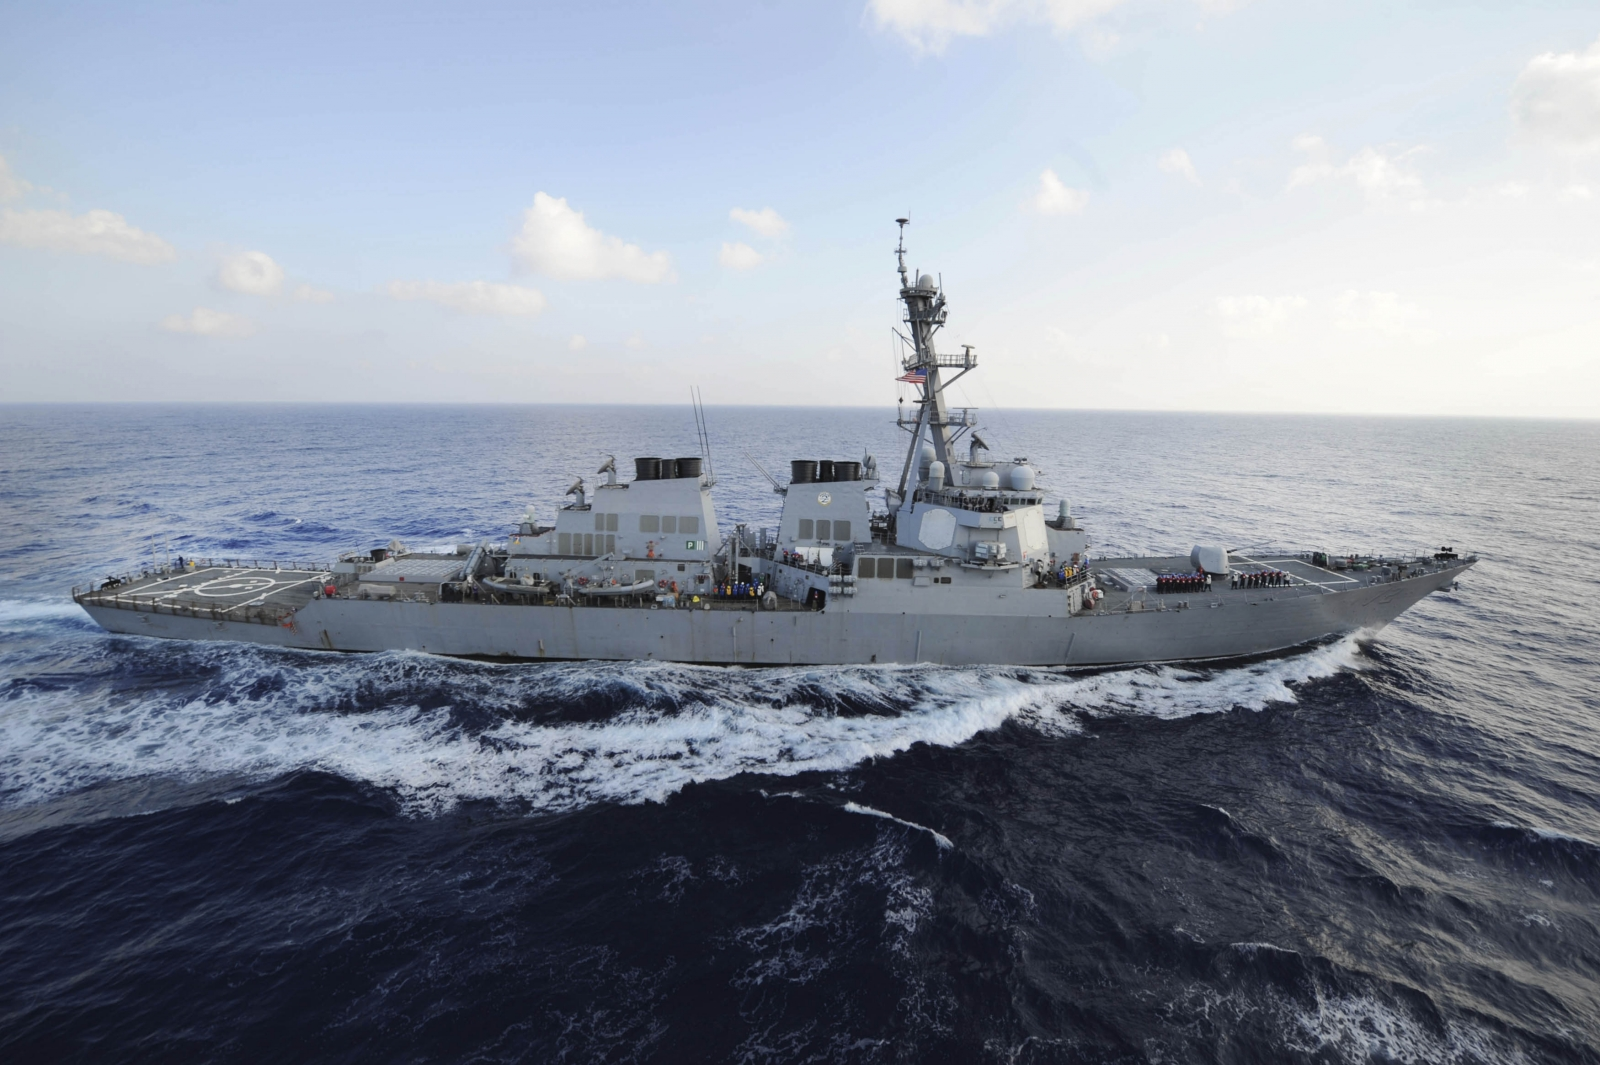 he guided-missile destroyer USS Mahan (DDG 72) transits the Mediterranean Sea